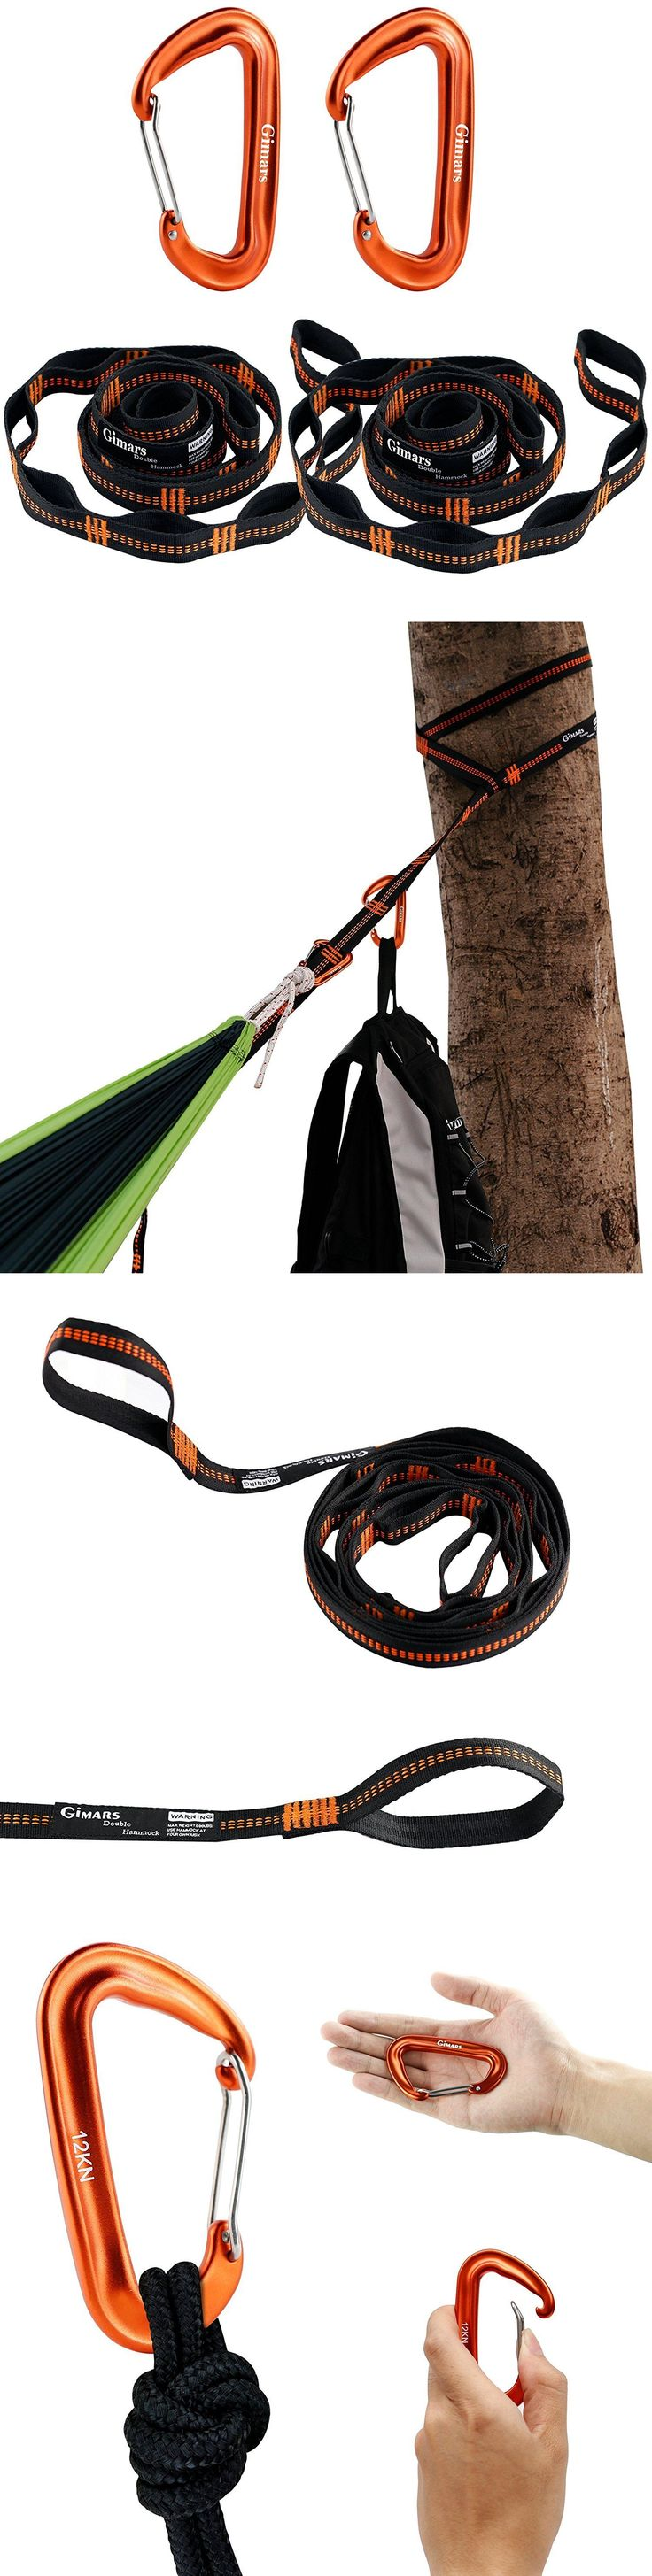 Carabiners and Hardware 50814: Hammock Strap Adjustable Tree Hanging And Carabiners Carrying Bag Heavy Duty -> BUY IT NOW ONLY: $50.99 on eBay!